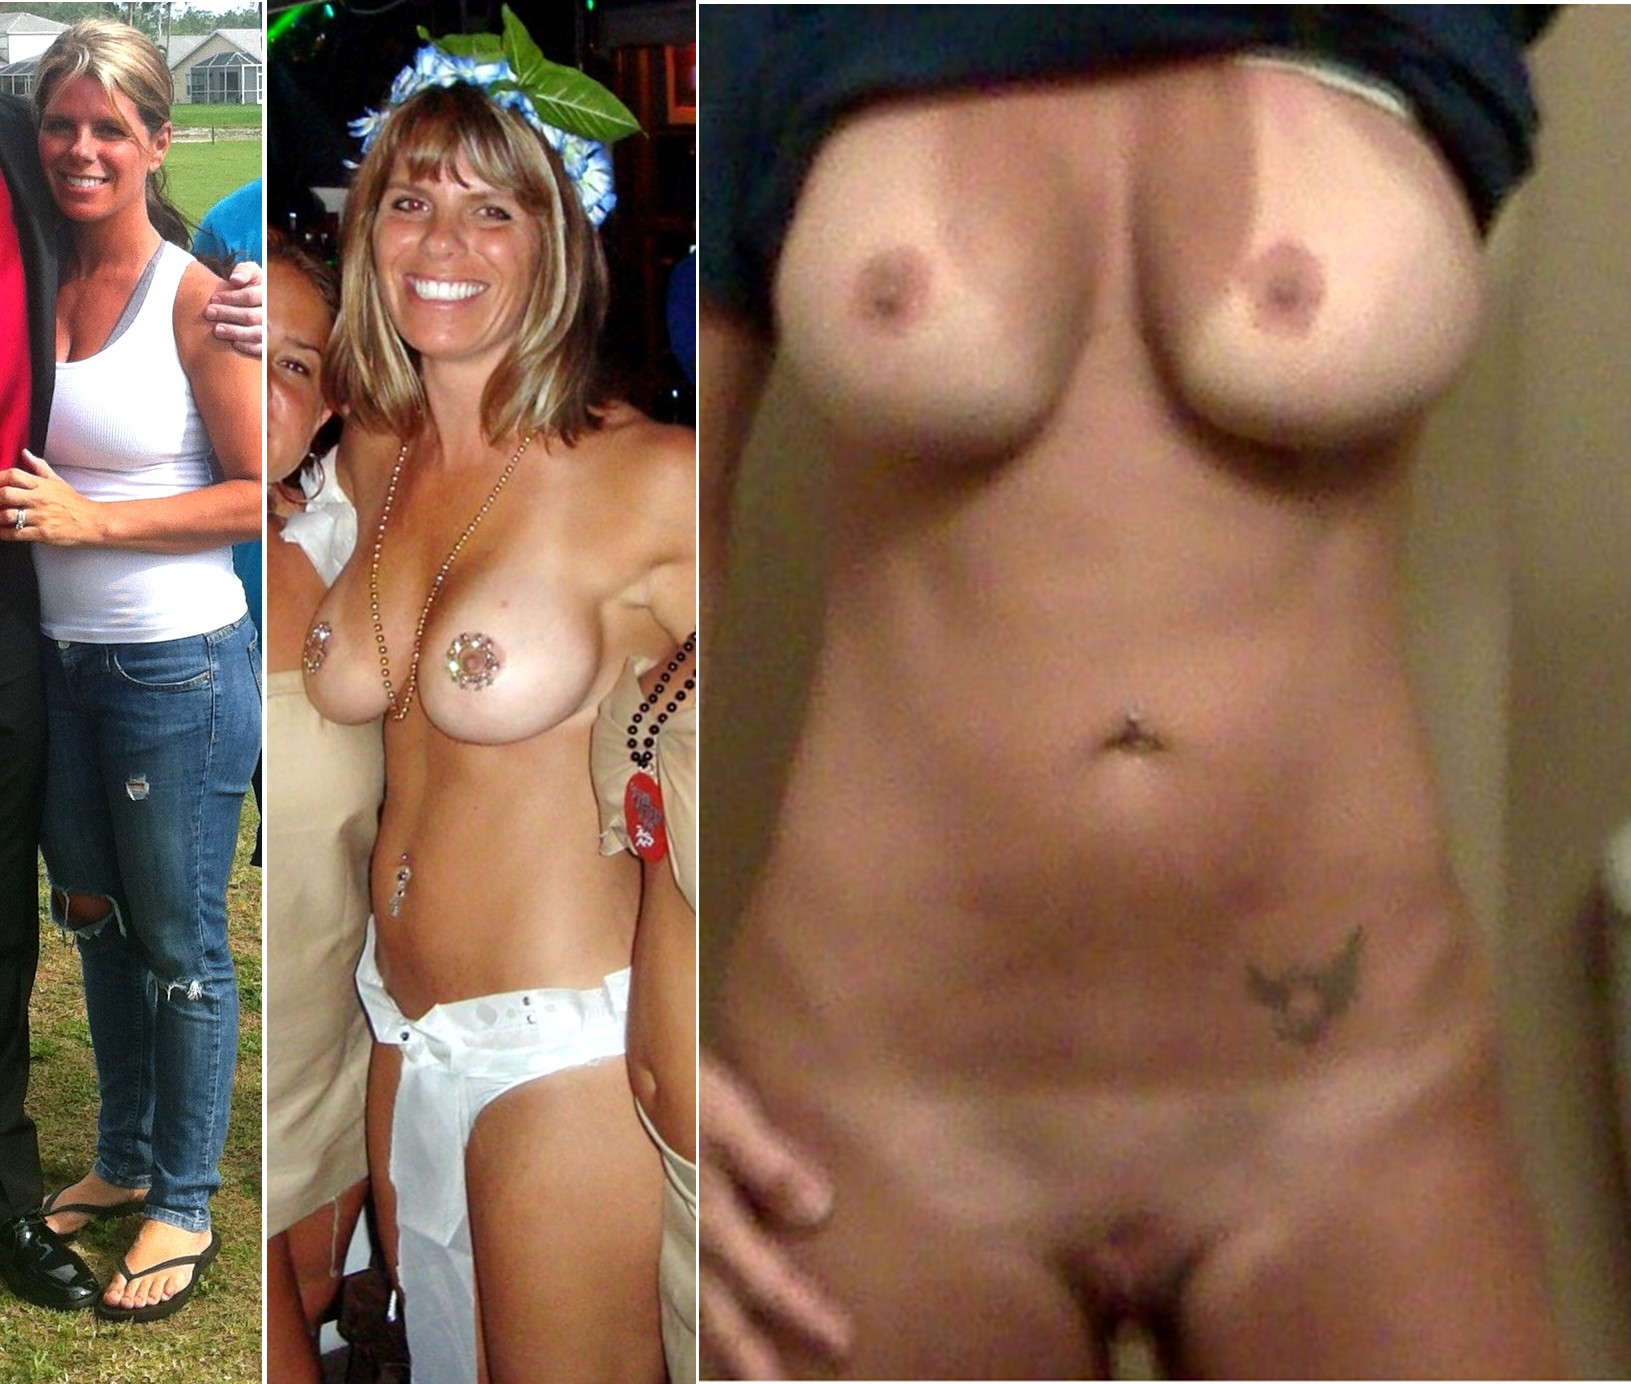 Seems wife dresssed naked really